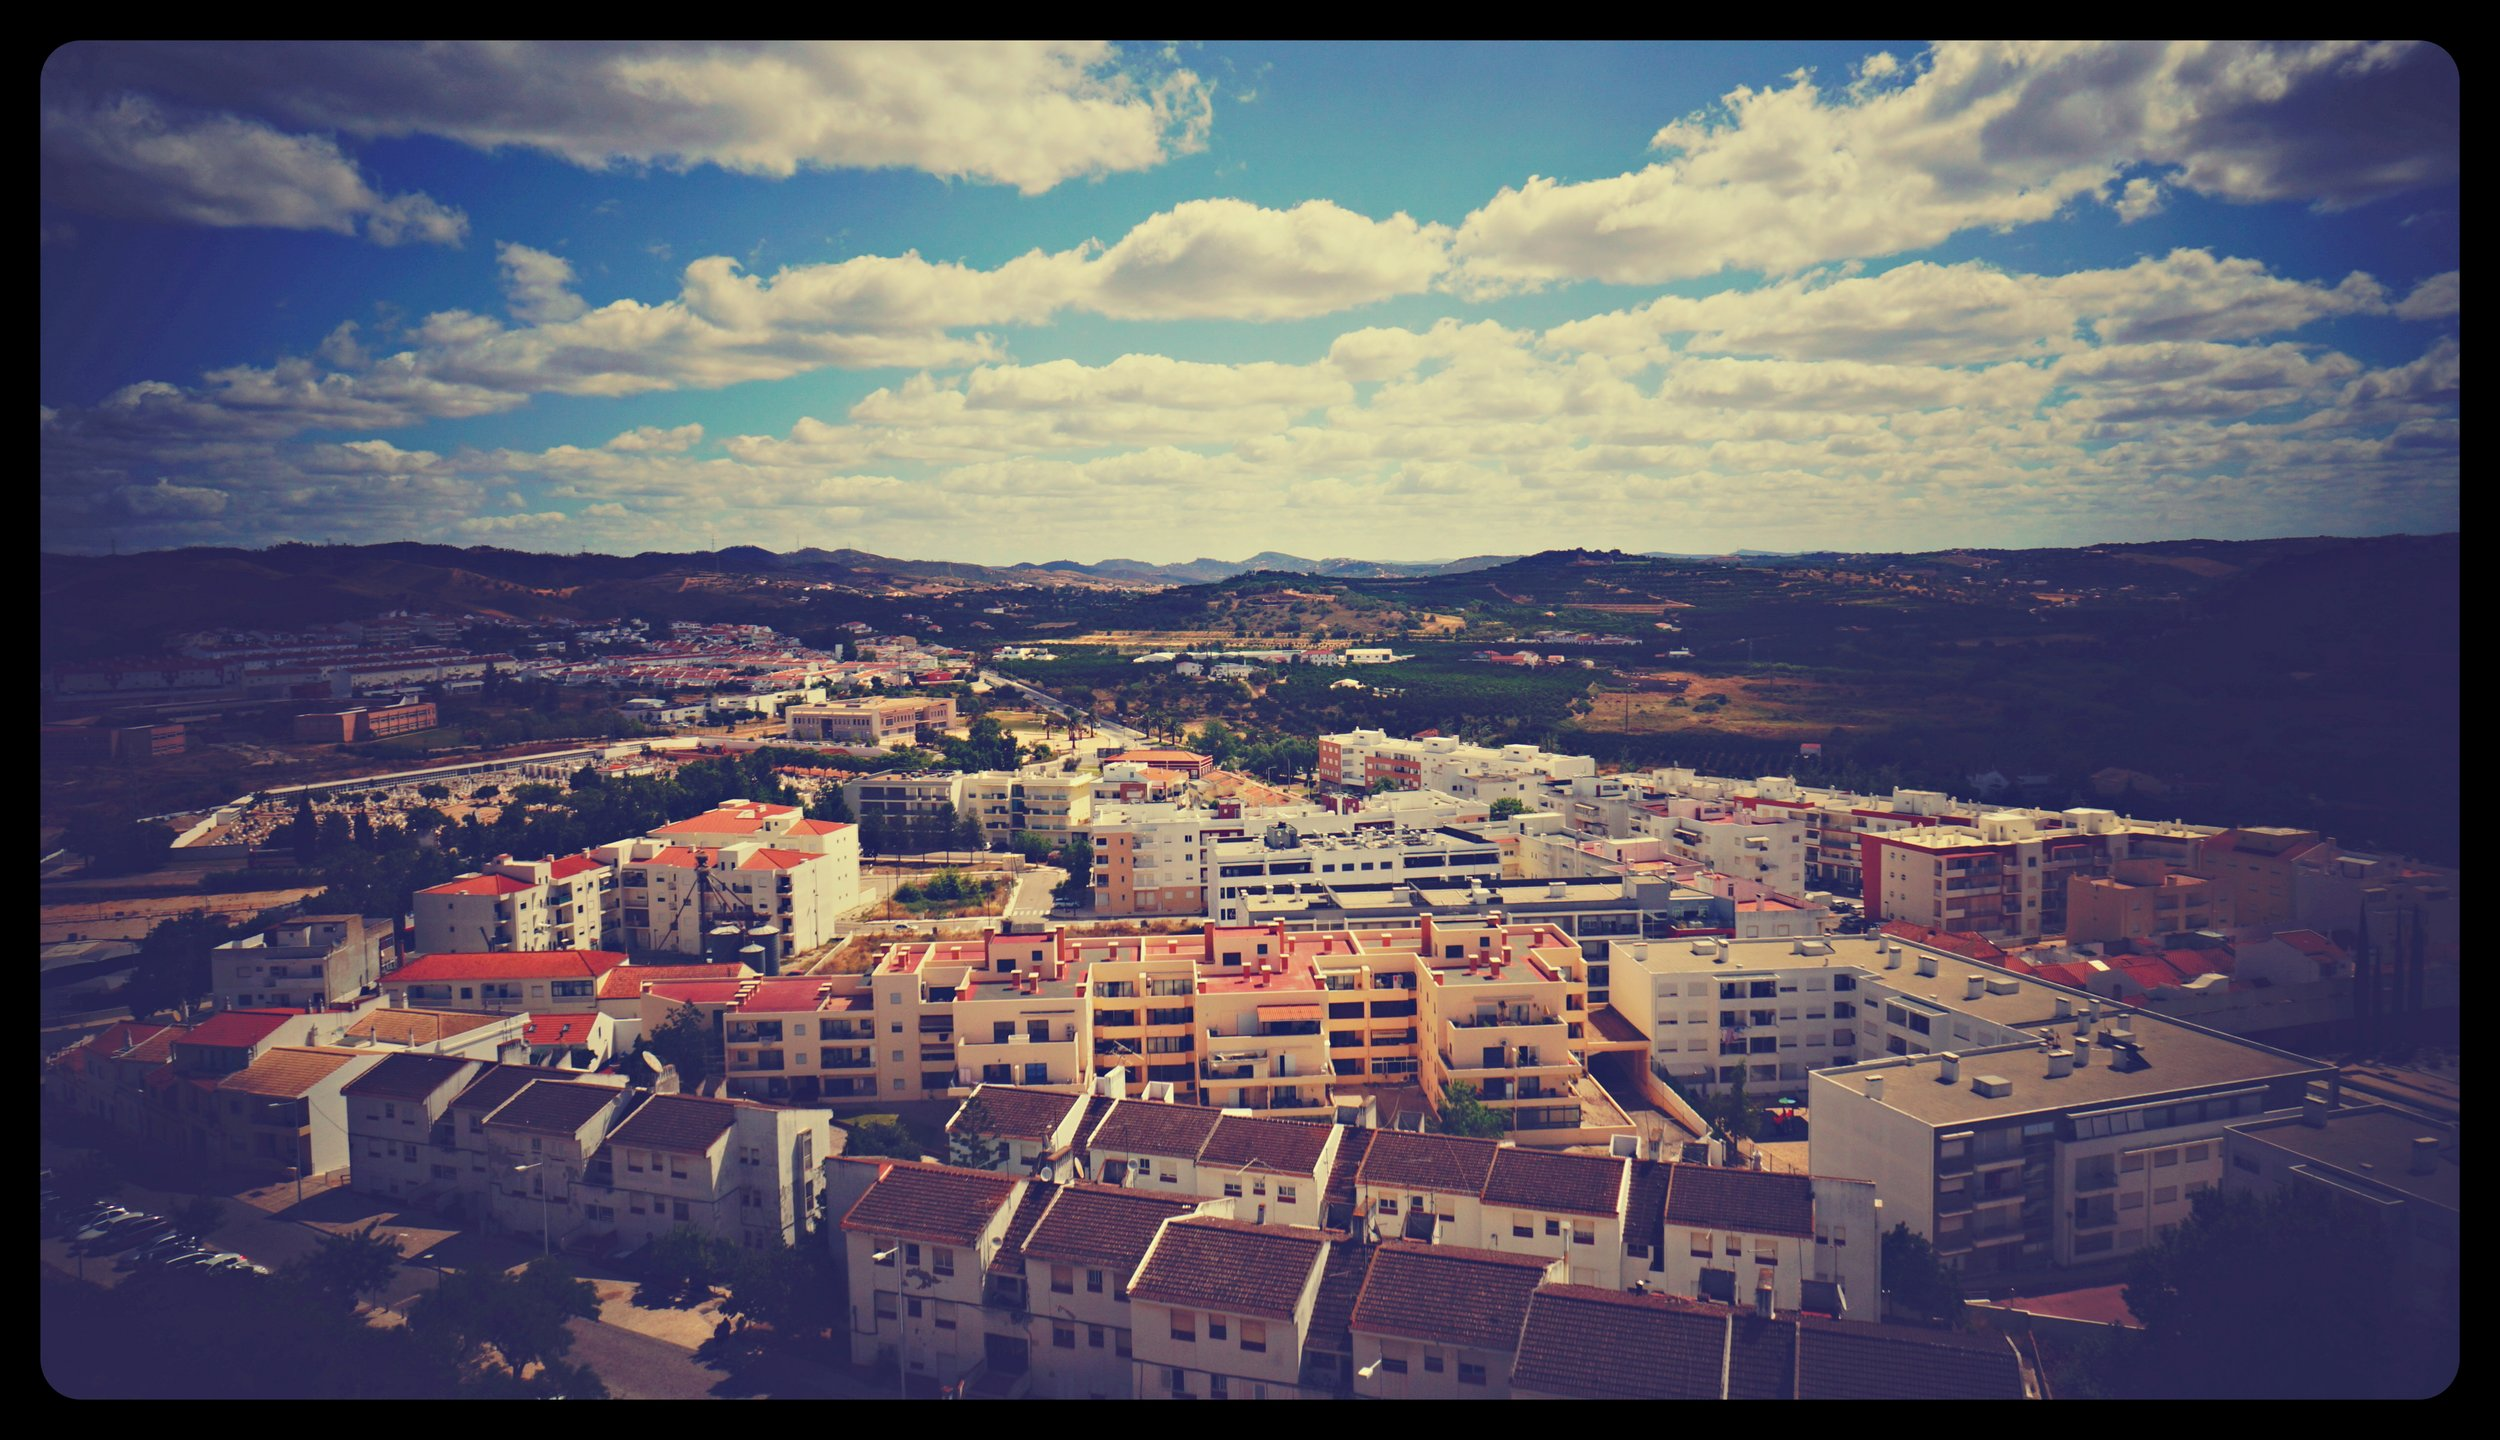 this photo has been taken during our trip in Silves